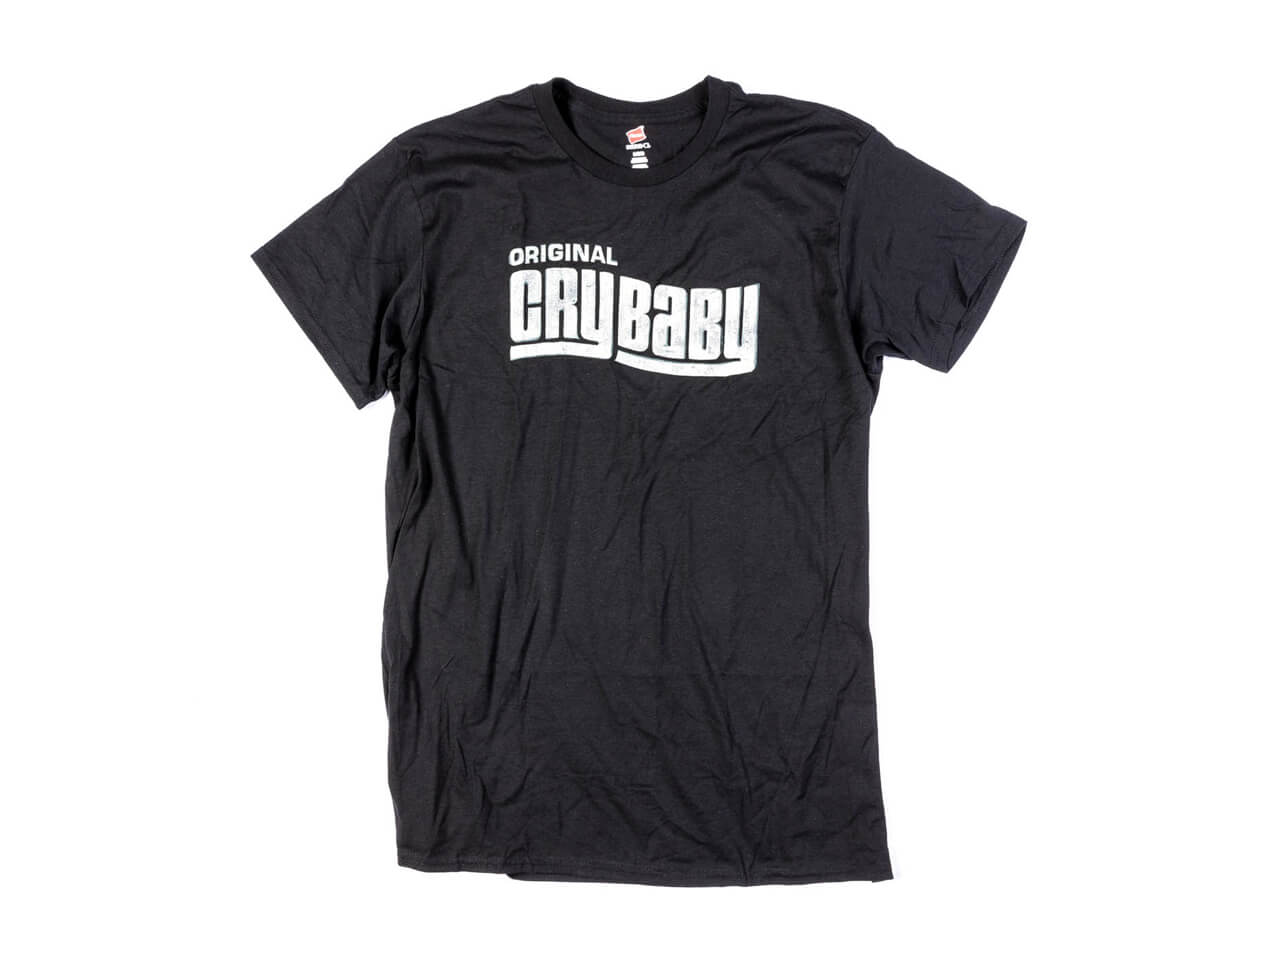 Jim Dunlop(ジムダンロップ) MEN'S CRY BABY® VINTAGE TEE / Black (Tシャツ)